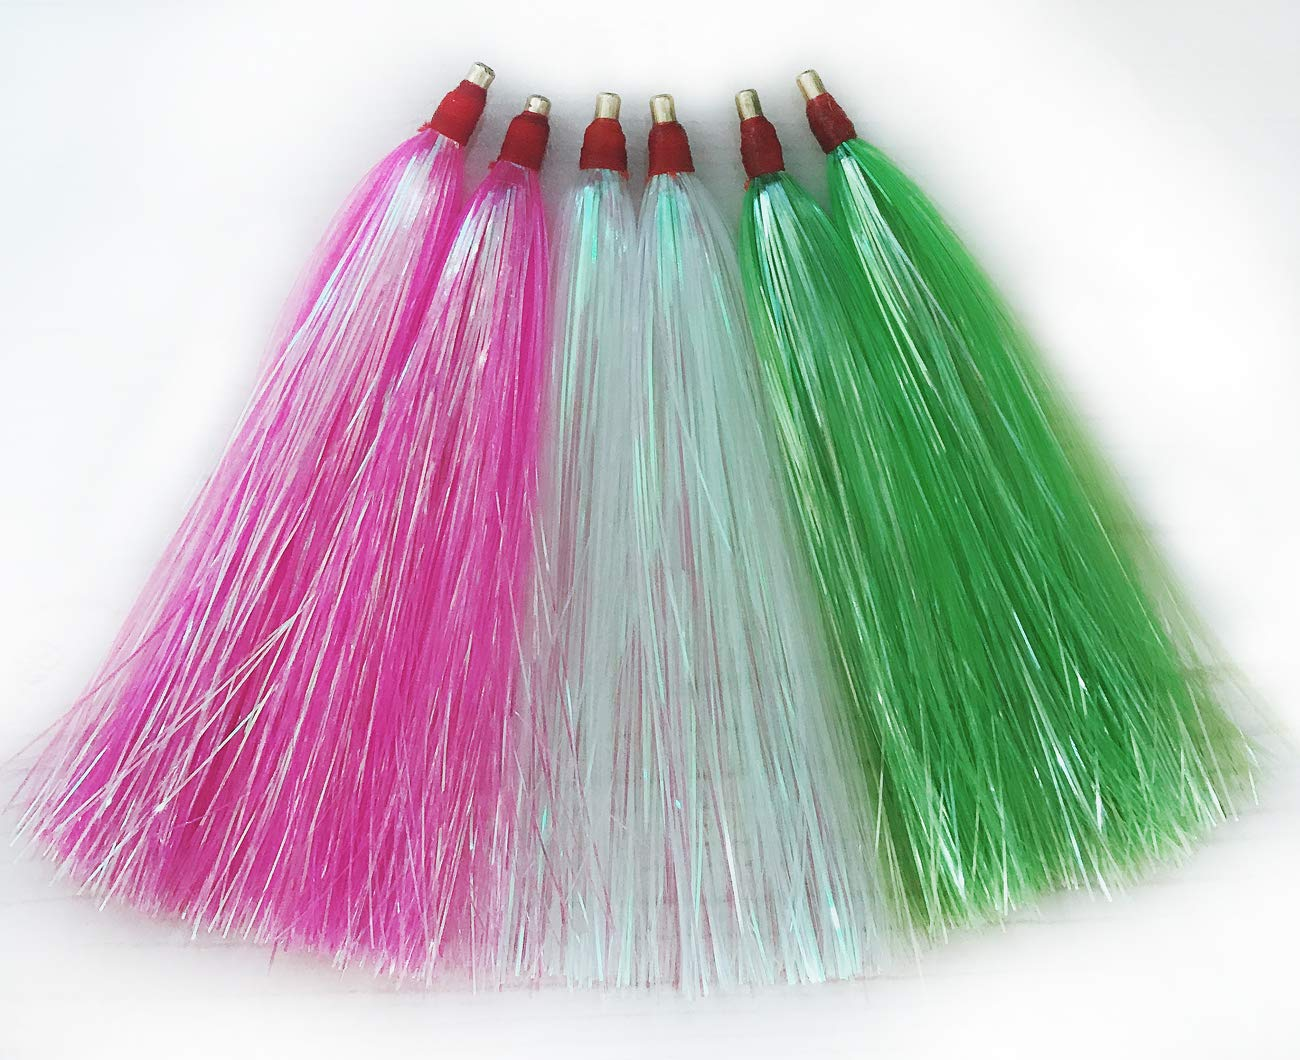 JSHANMEI Fishing Lure Flash Teaser Tail Bucktail Teaser Fishing Bait Rigs (Three Colors Mixed - 18pcs) by JSHANMEI